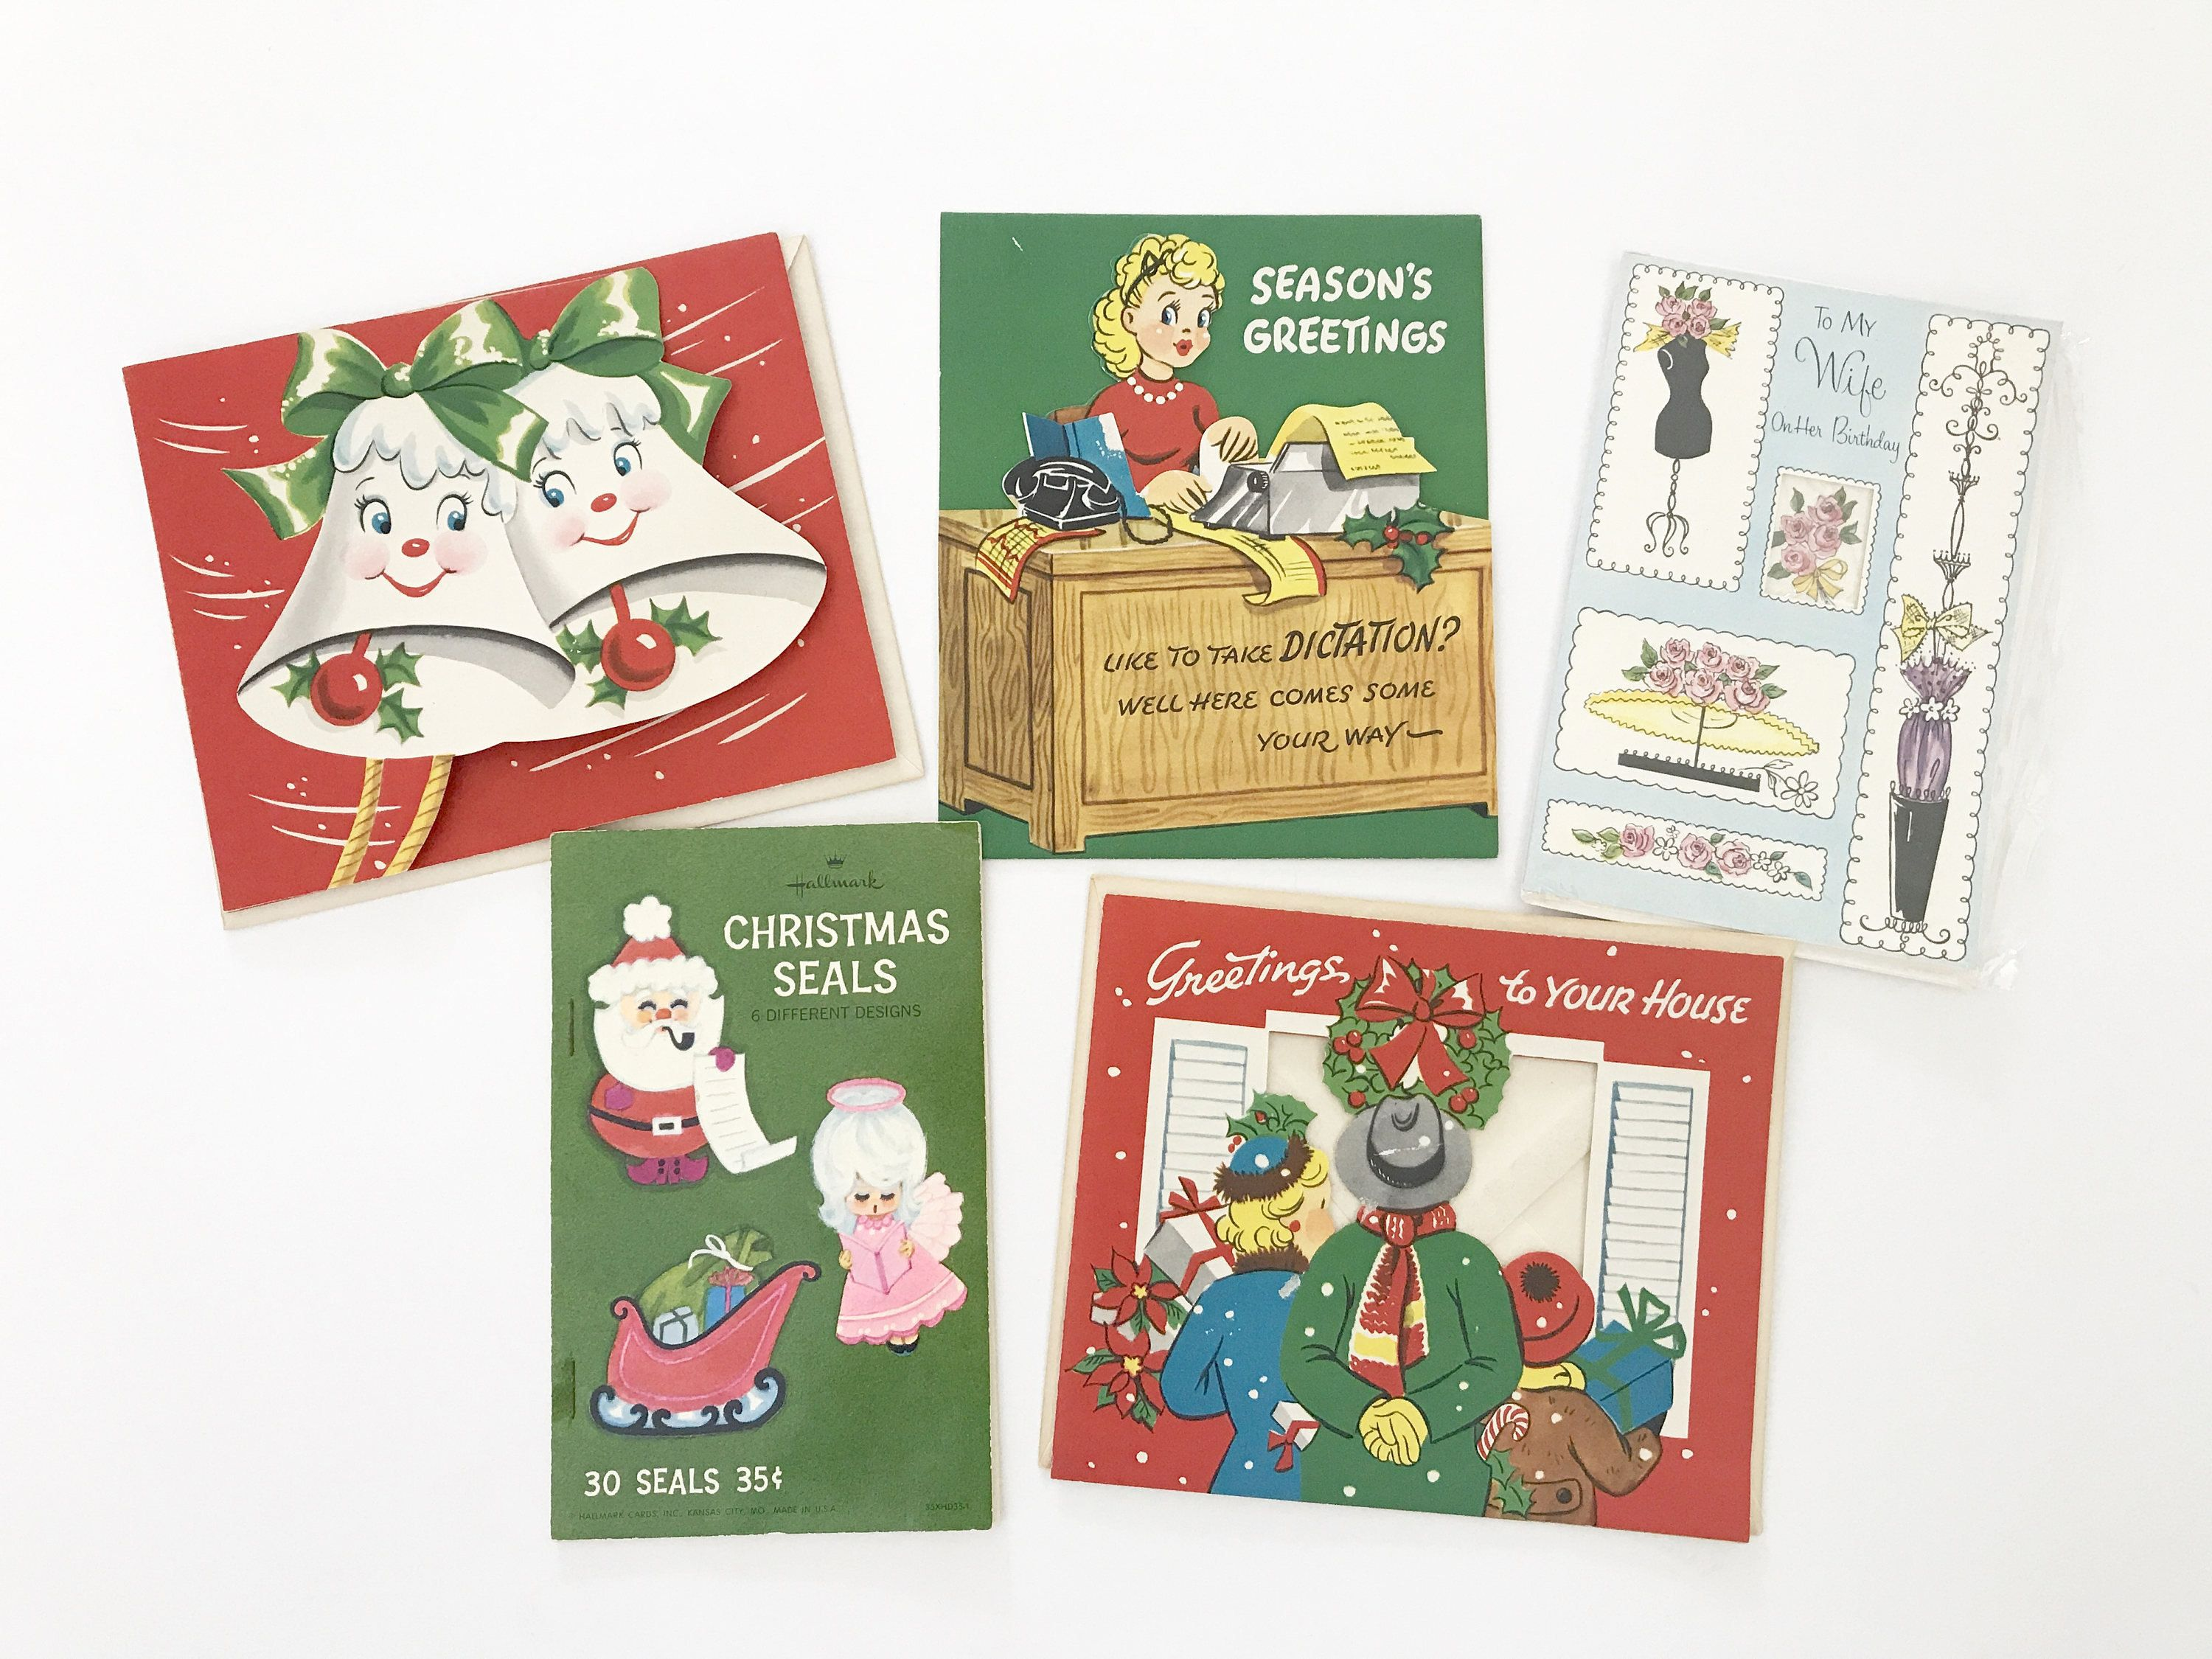 Lot of five vintage christmas cards birthday card wife holiday lot of five vintage christmas cards birthday card wife holiday seals hallmark all unused at neatokeen kristyandbryce Choice Image